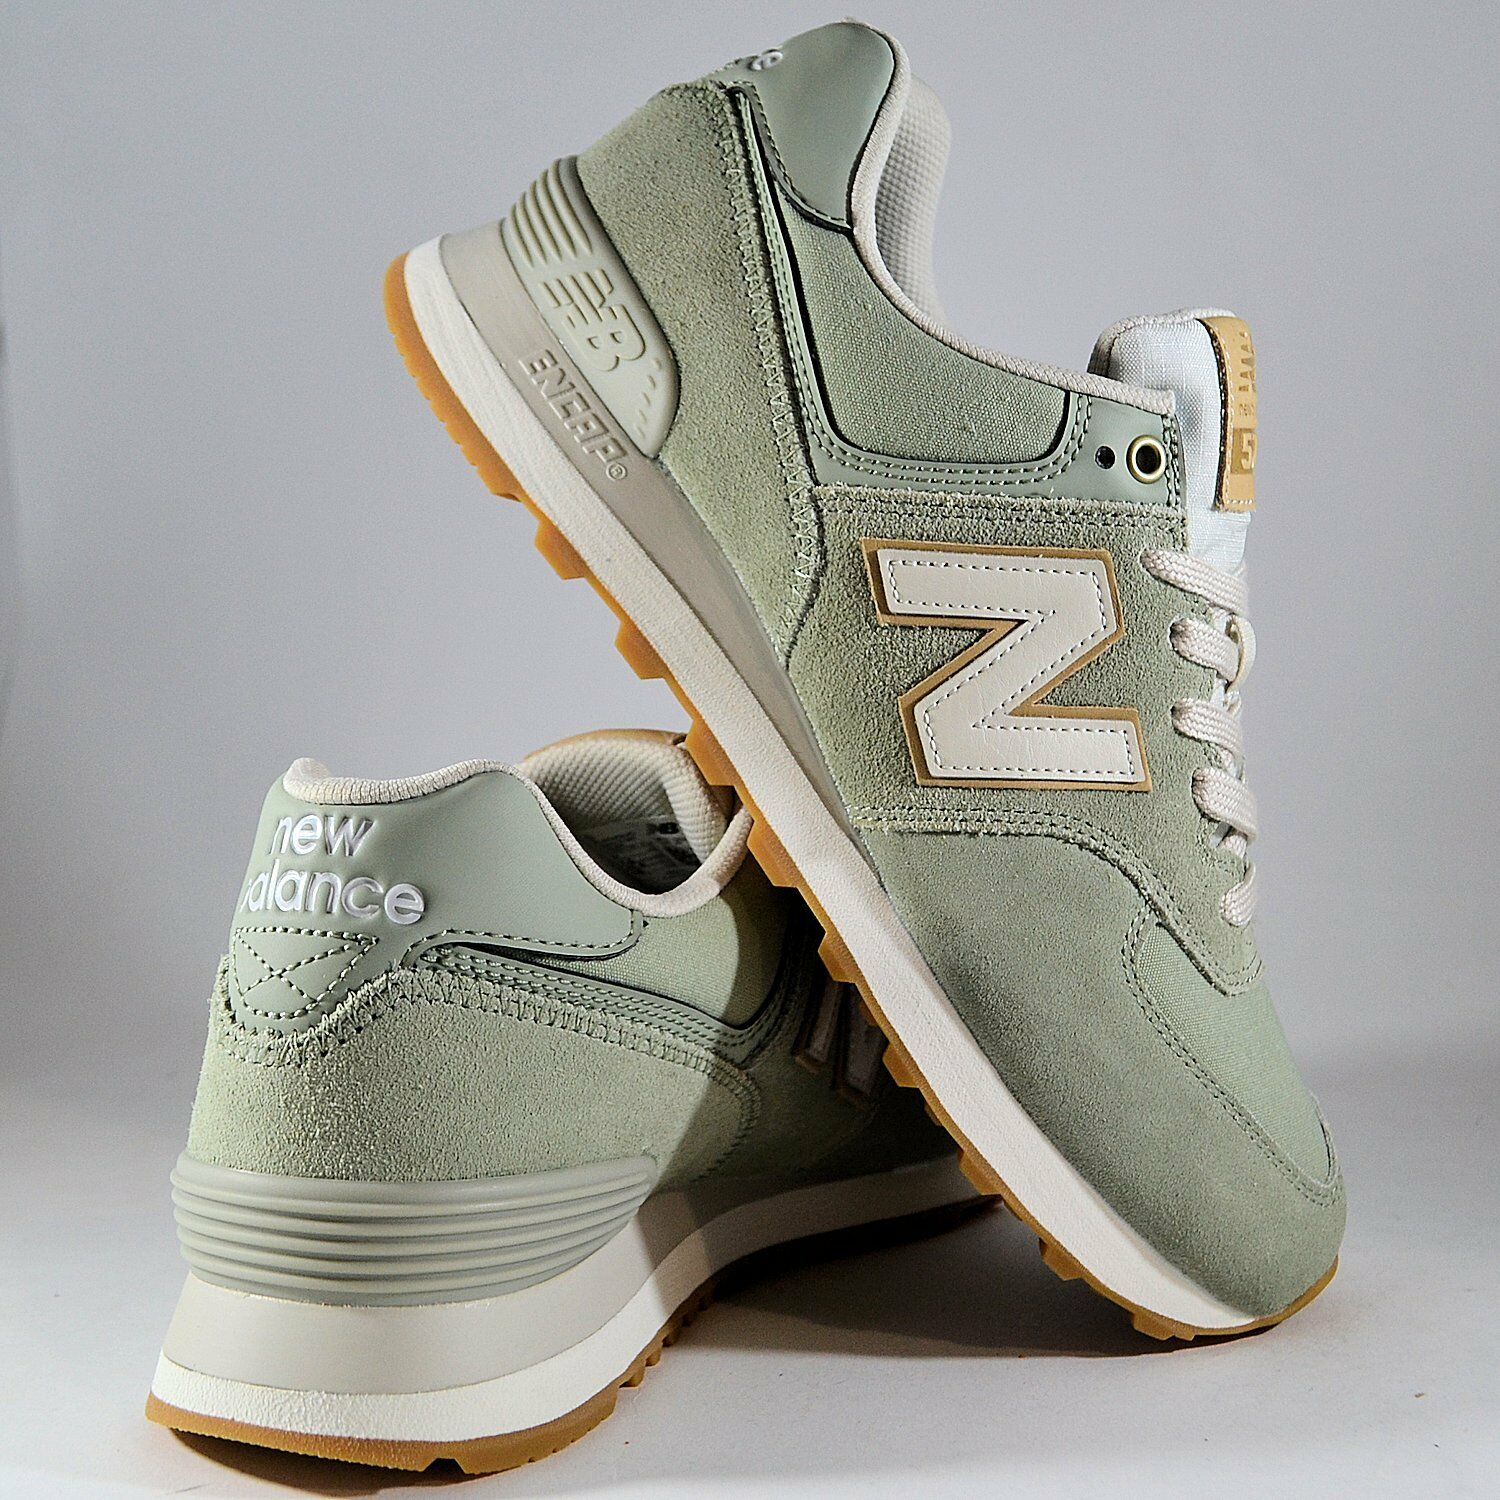 New Chaussures Balance,NEUF Chaussures New Homme ML574 MER Escape Plusieurs couleurs- A U S V R 7f1a88